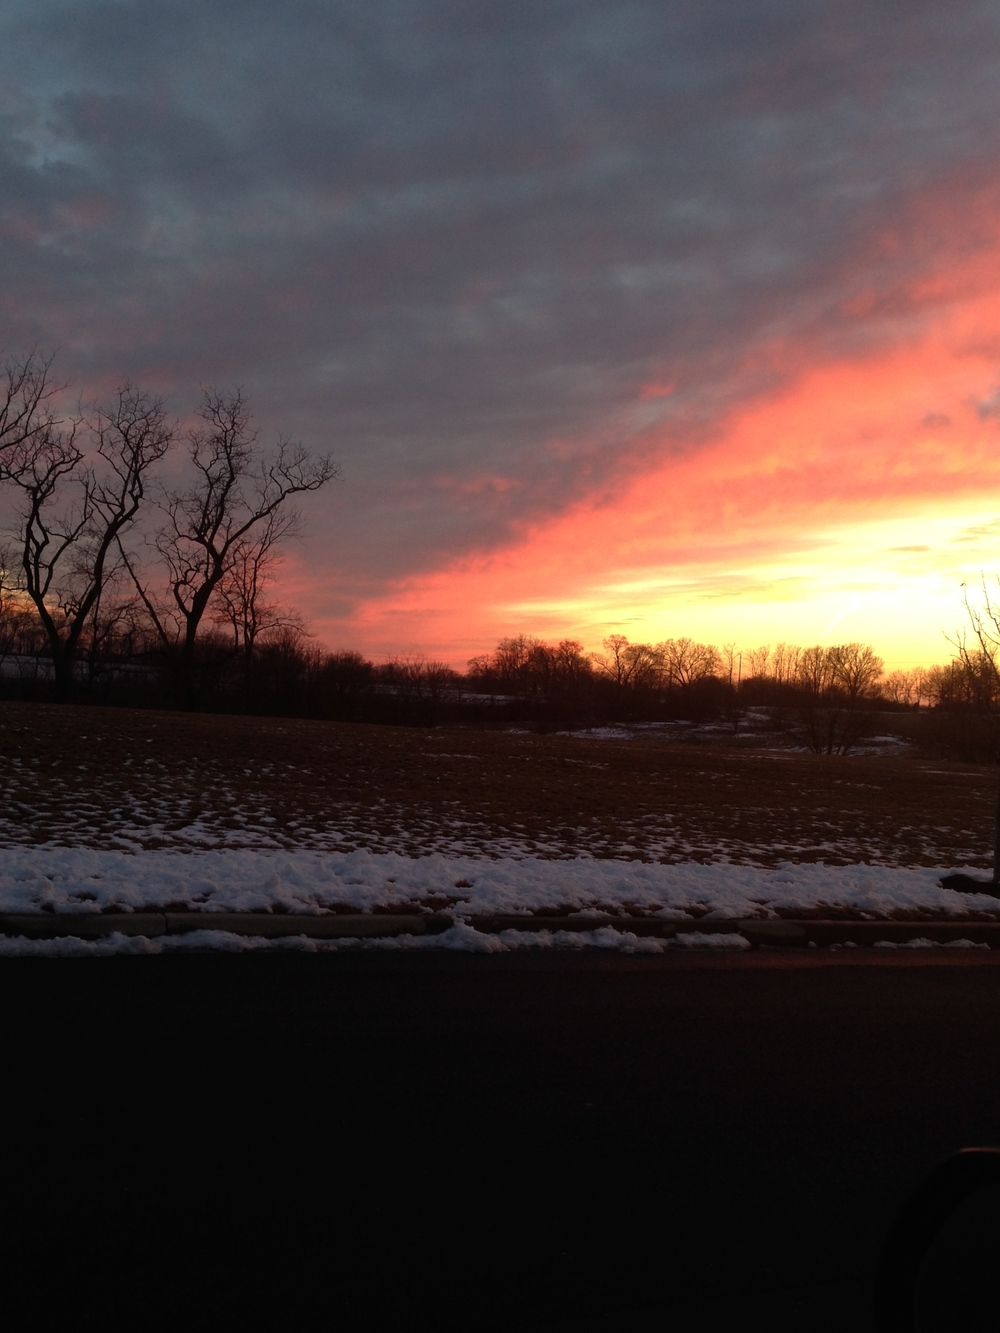 Melting snow and a beautiful sunset in Urbana, Md.